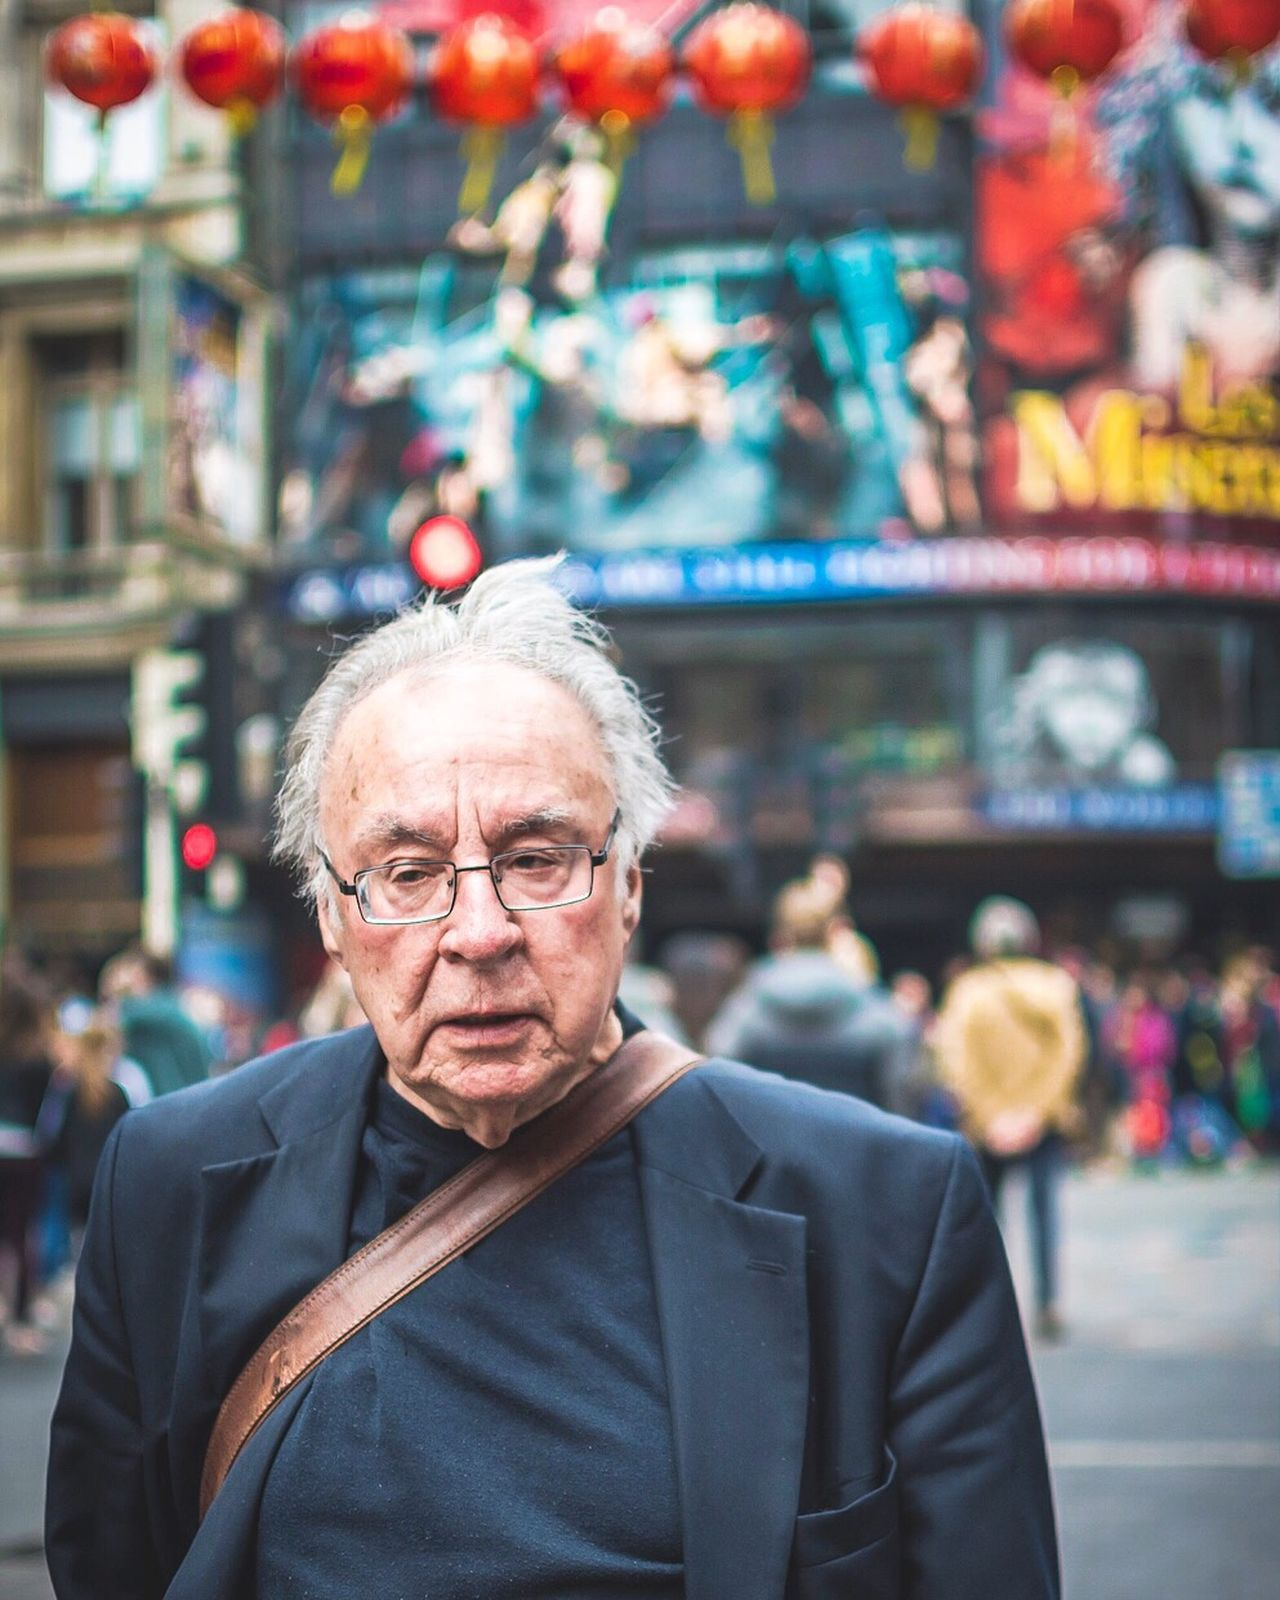 London background colours Senior Adult Eyeglasses  Focus On Foreground Real People Looking At Camera Senior Men Portrait One Person Outdoors Lifestyles Men City Standing One Man Only Day London London Lifestyle People Street Photography Streetphotography The Street Photographer - 2017 EyeEm Awards